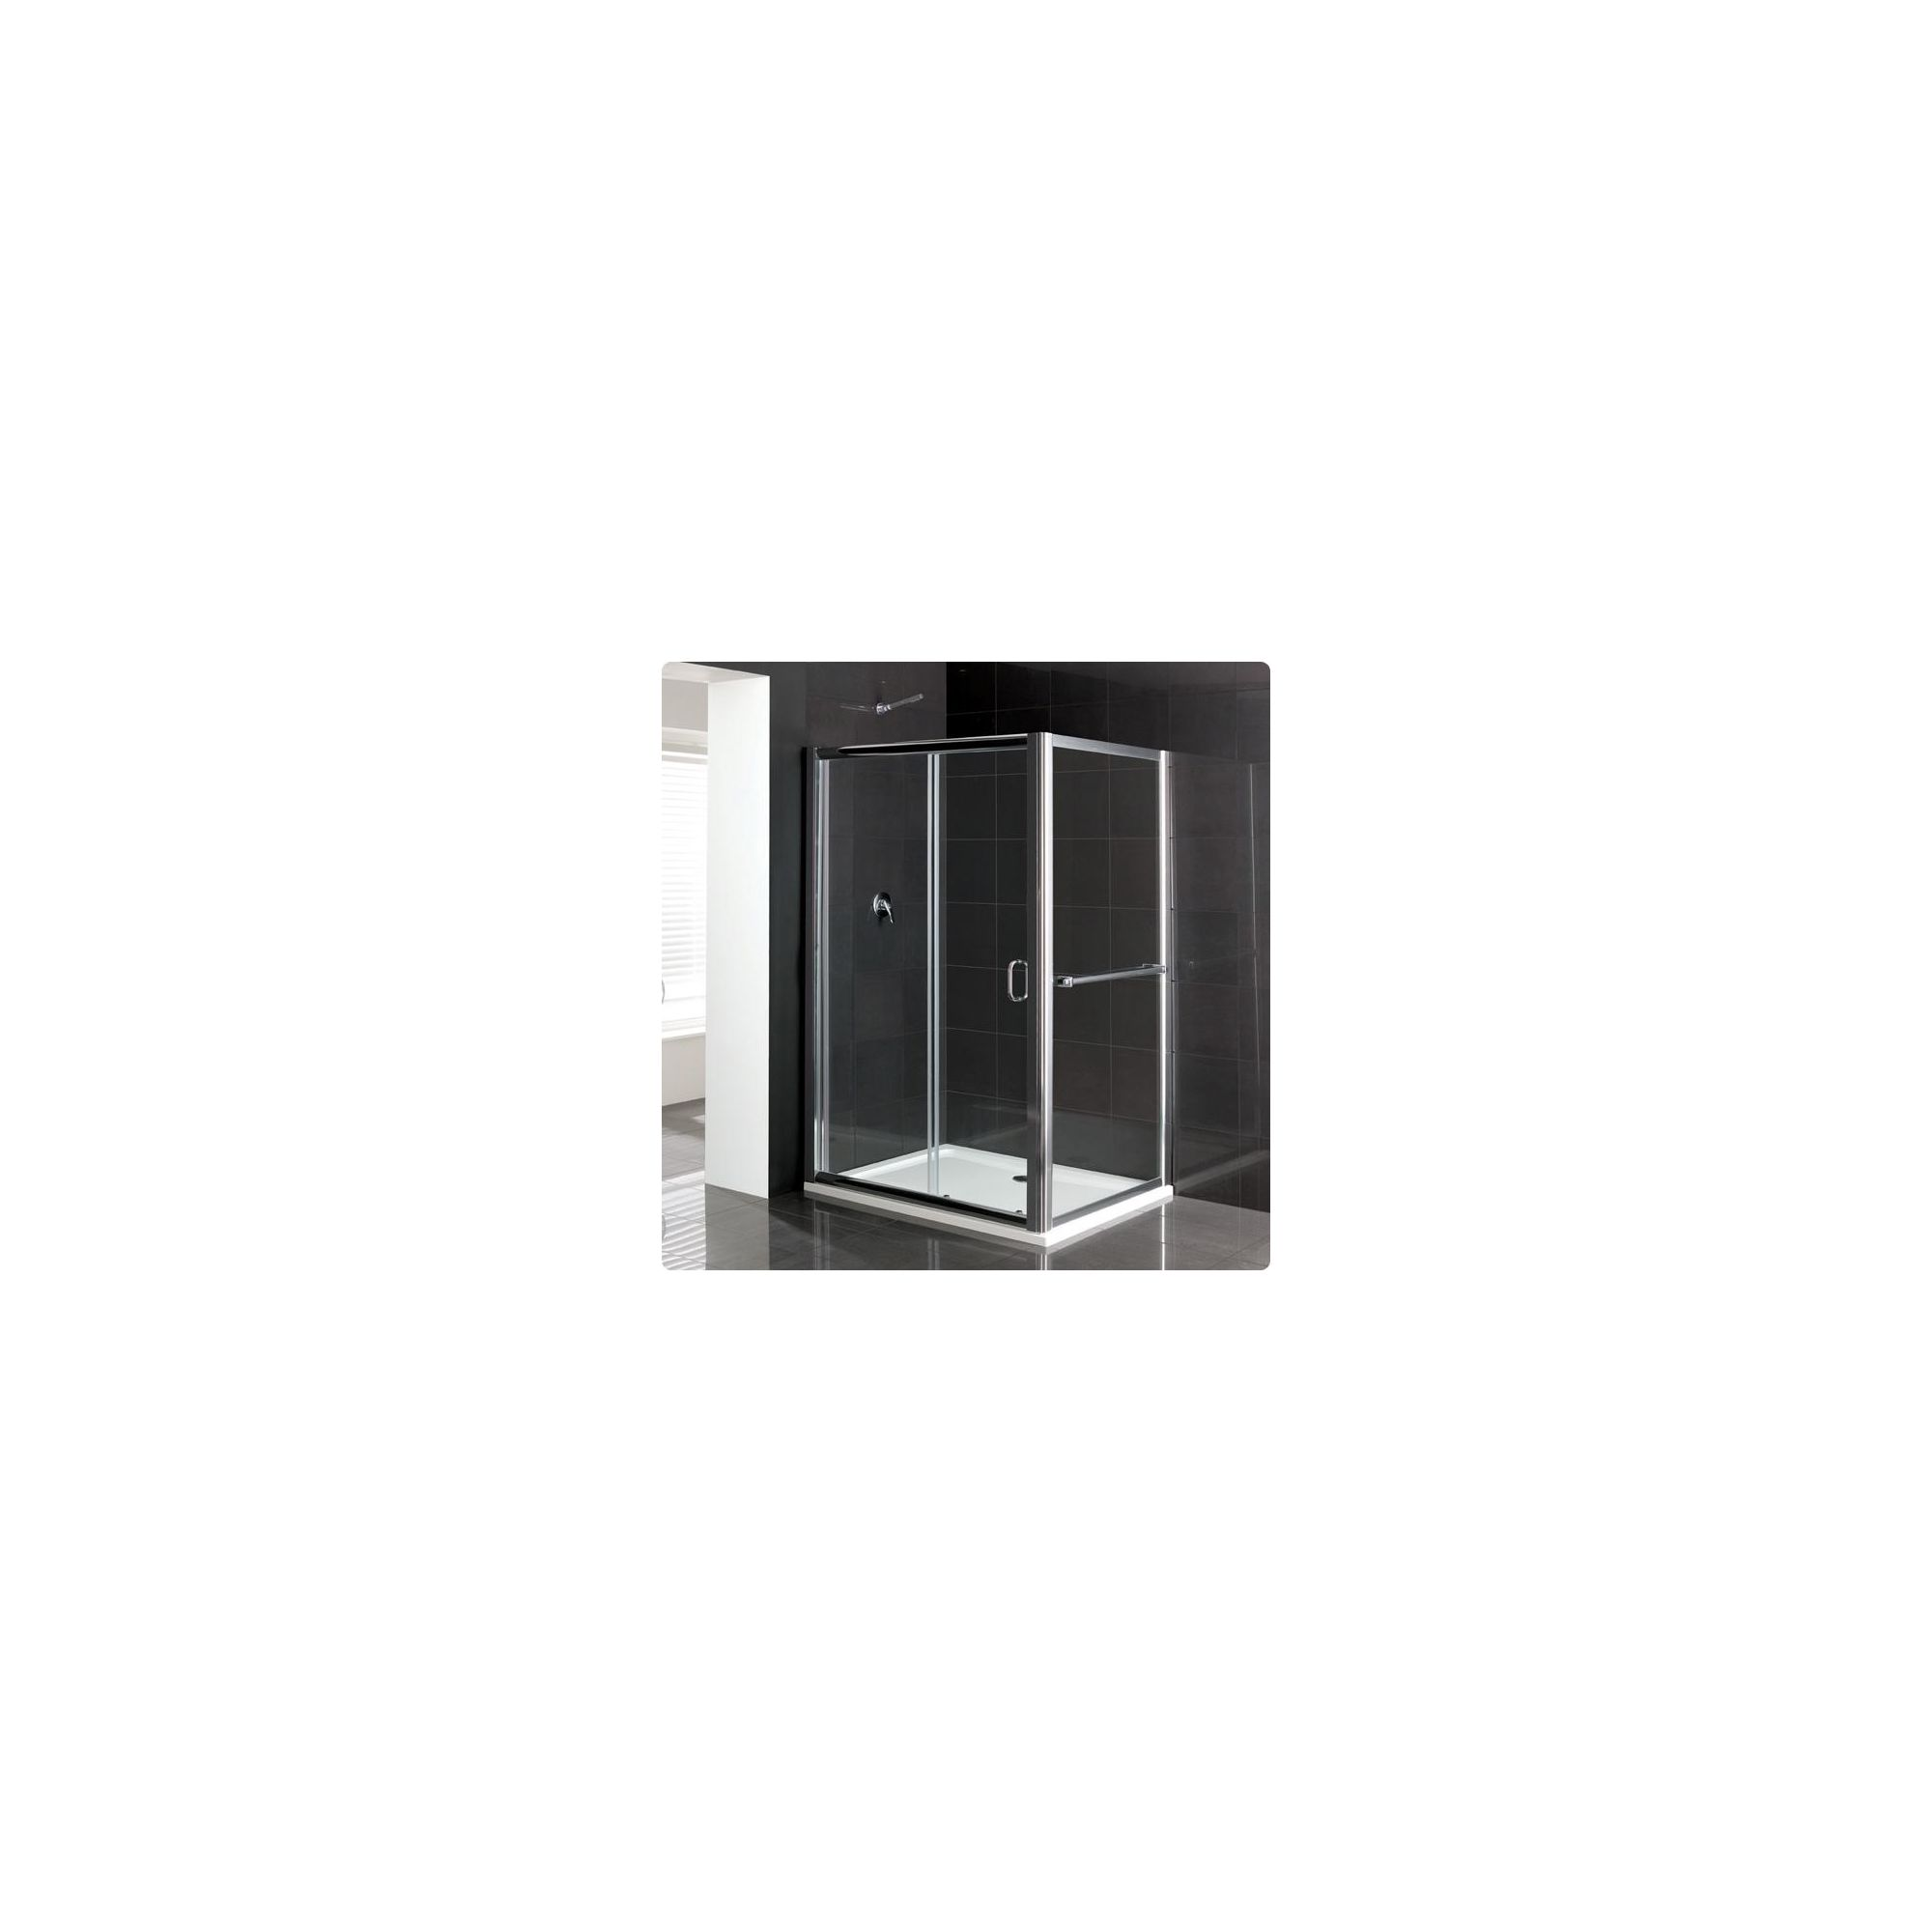 Duchy Elite Silver Sliding Door Shower Enclosure with Towel Rail, 1100mm x 700mm, Standard Tray, 6mm Glass at Tesco Direct